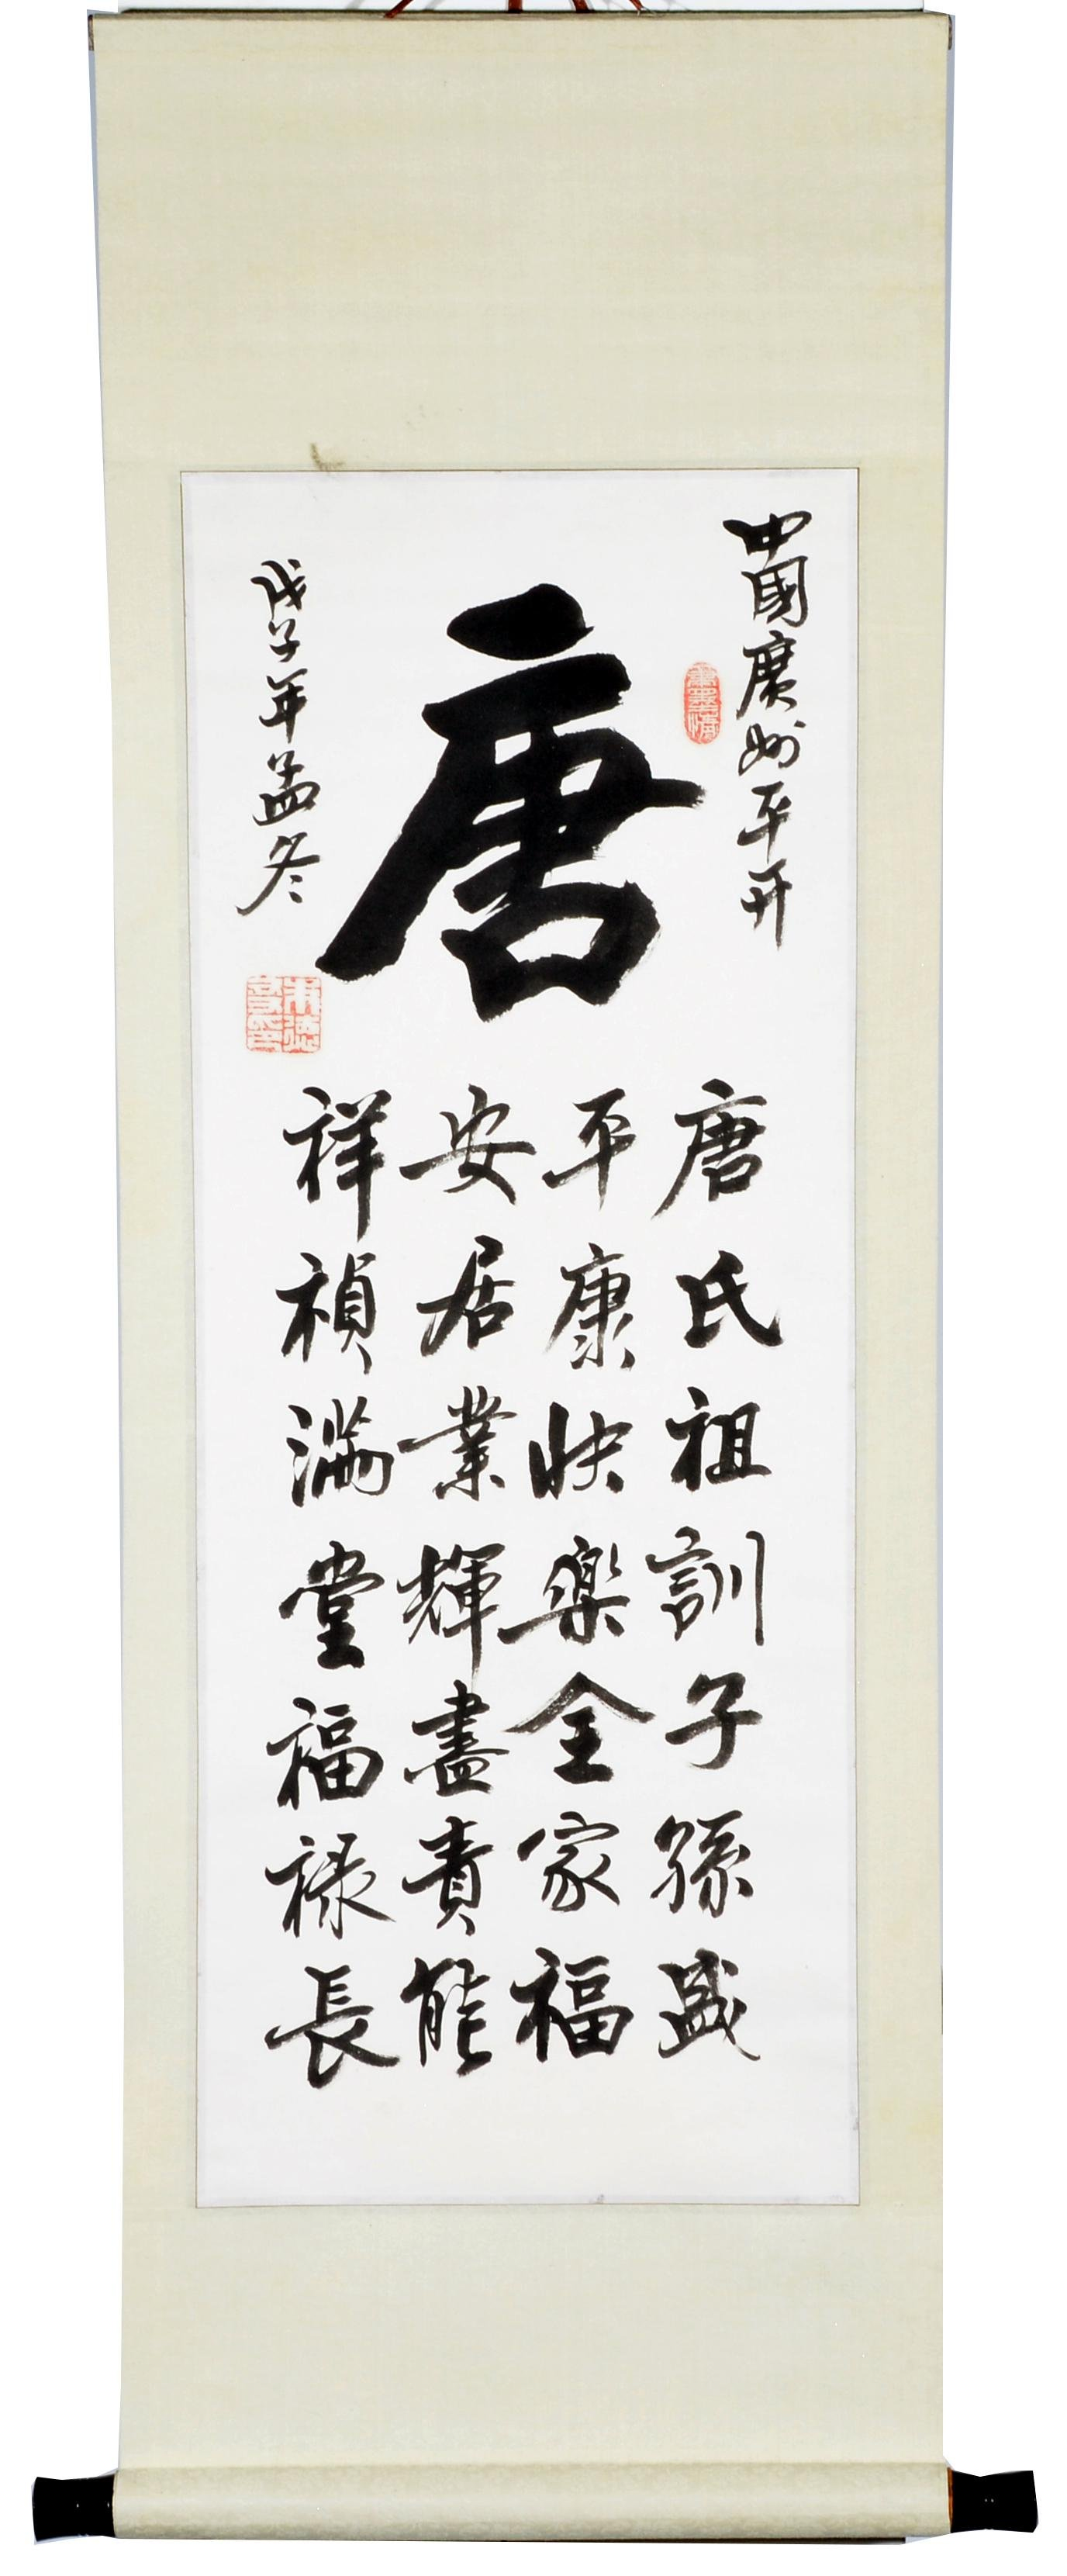 Chinese Calligraphy Scroll, signed